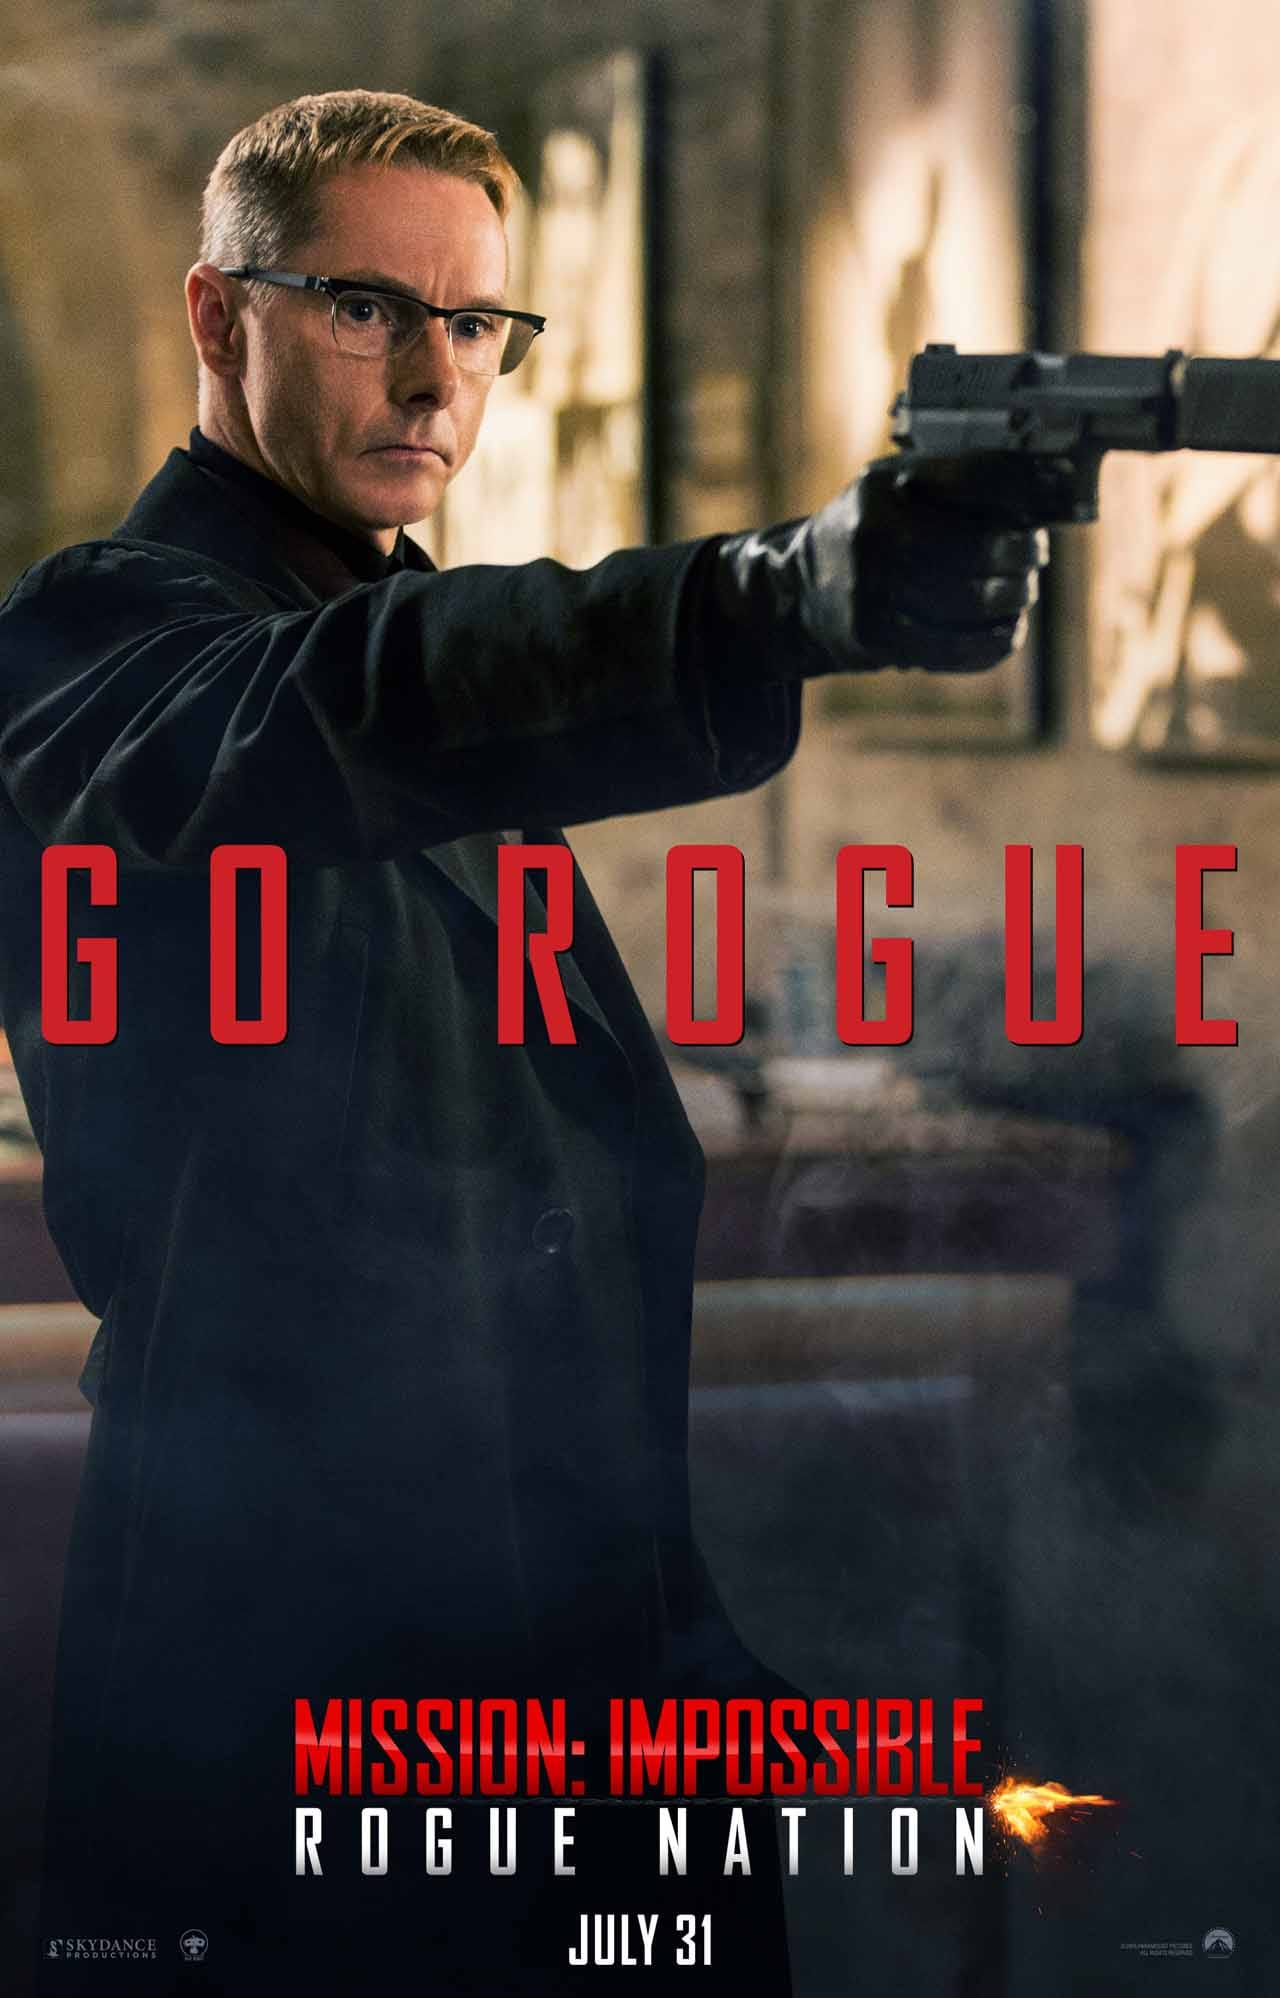 Mission: Impossible - Rogue Nation Wallpapers hd